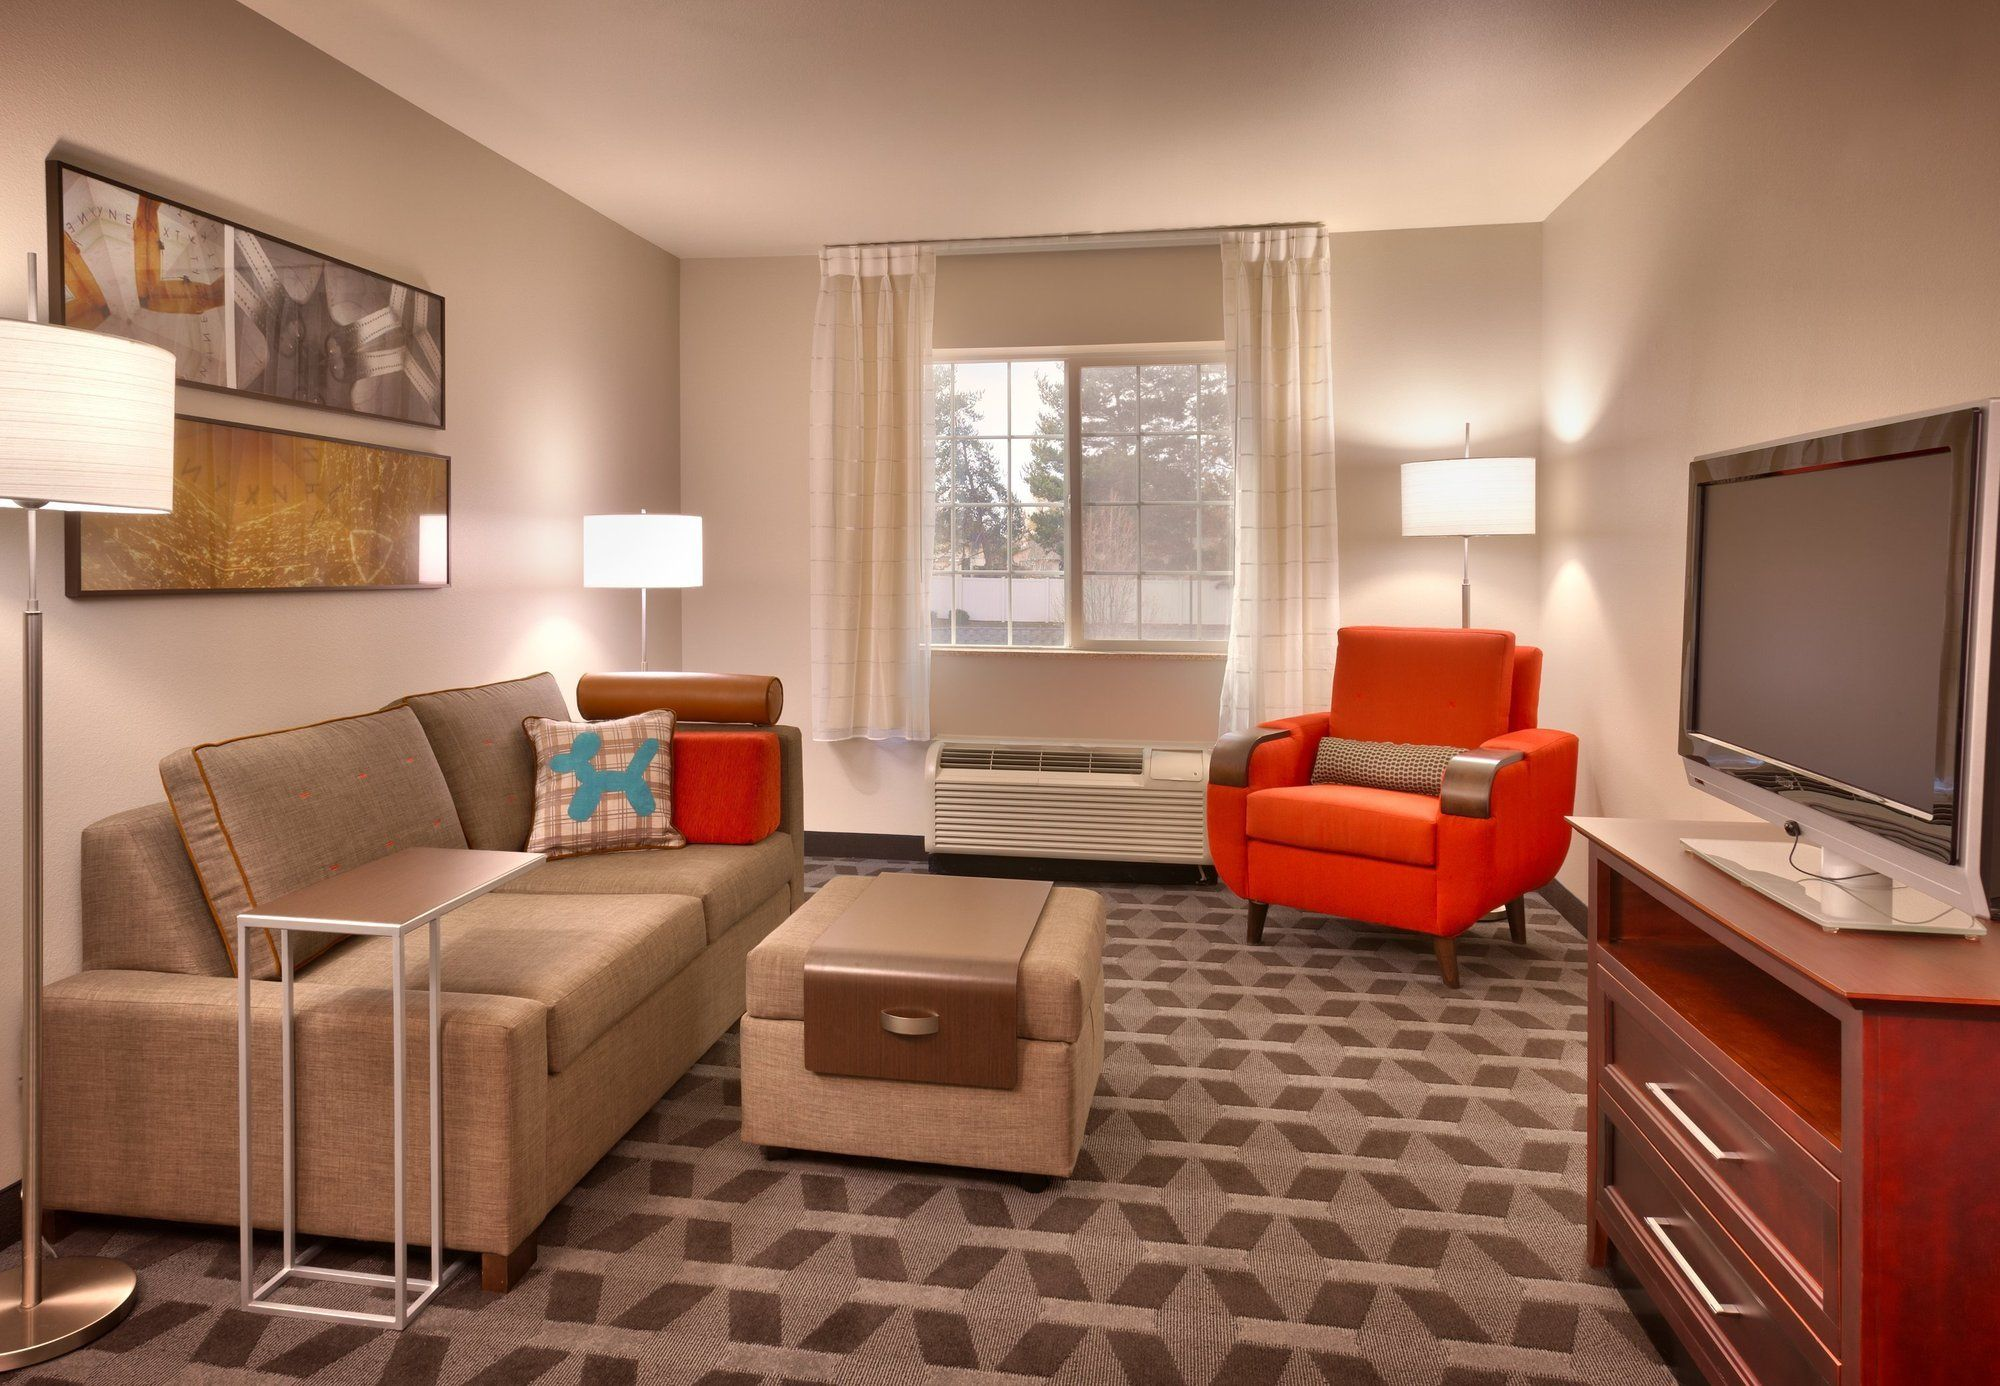 Meridian Hotel Coupons for Meridian, Idaho - FreeHotelCoupons.com